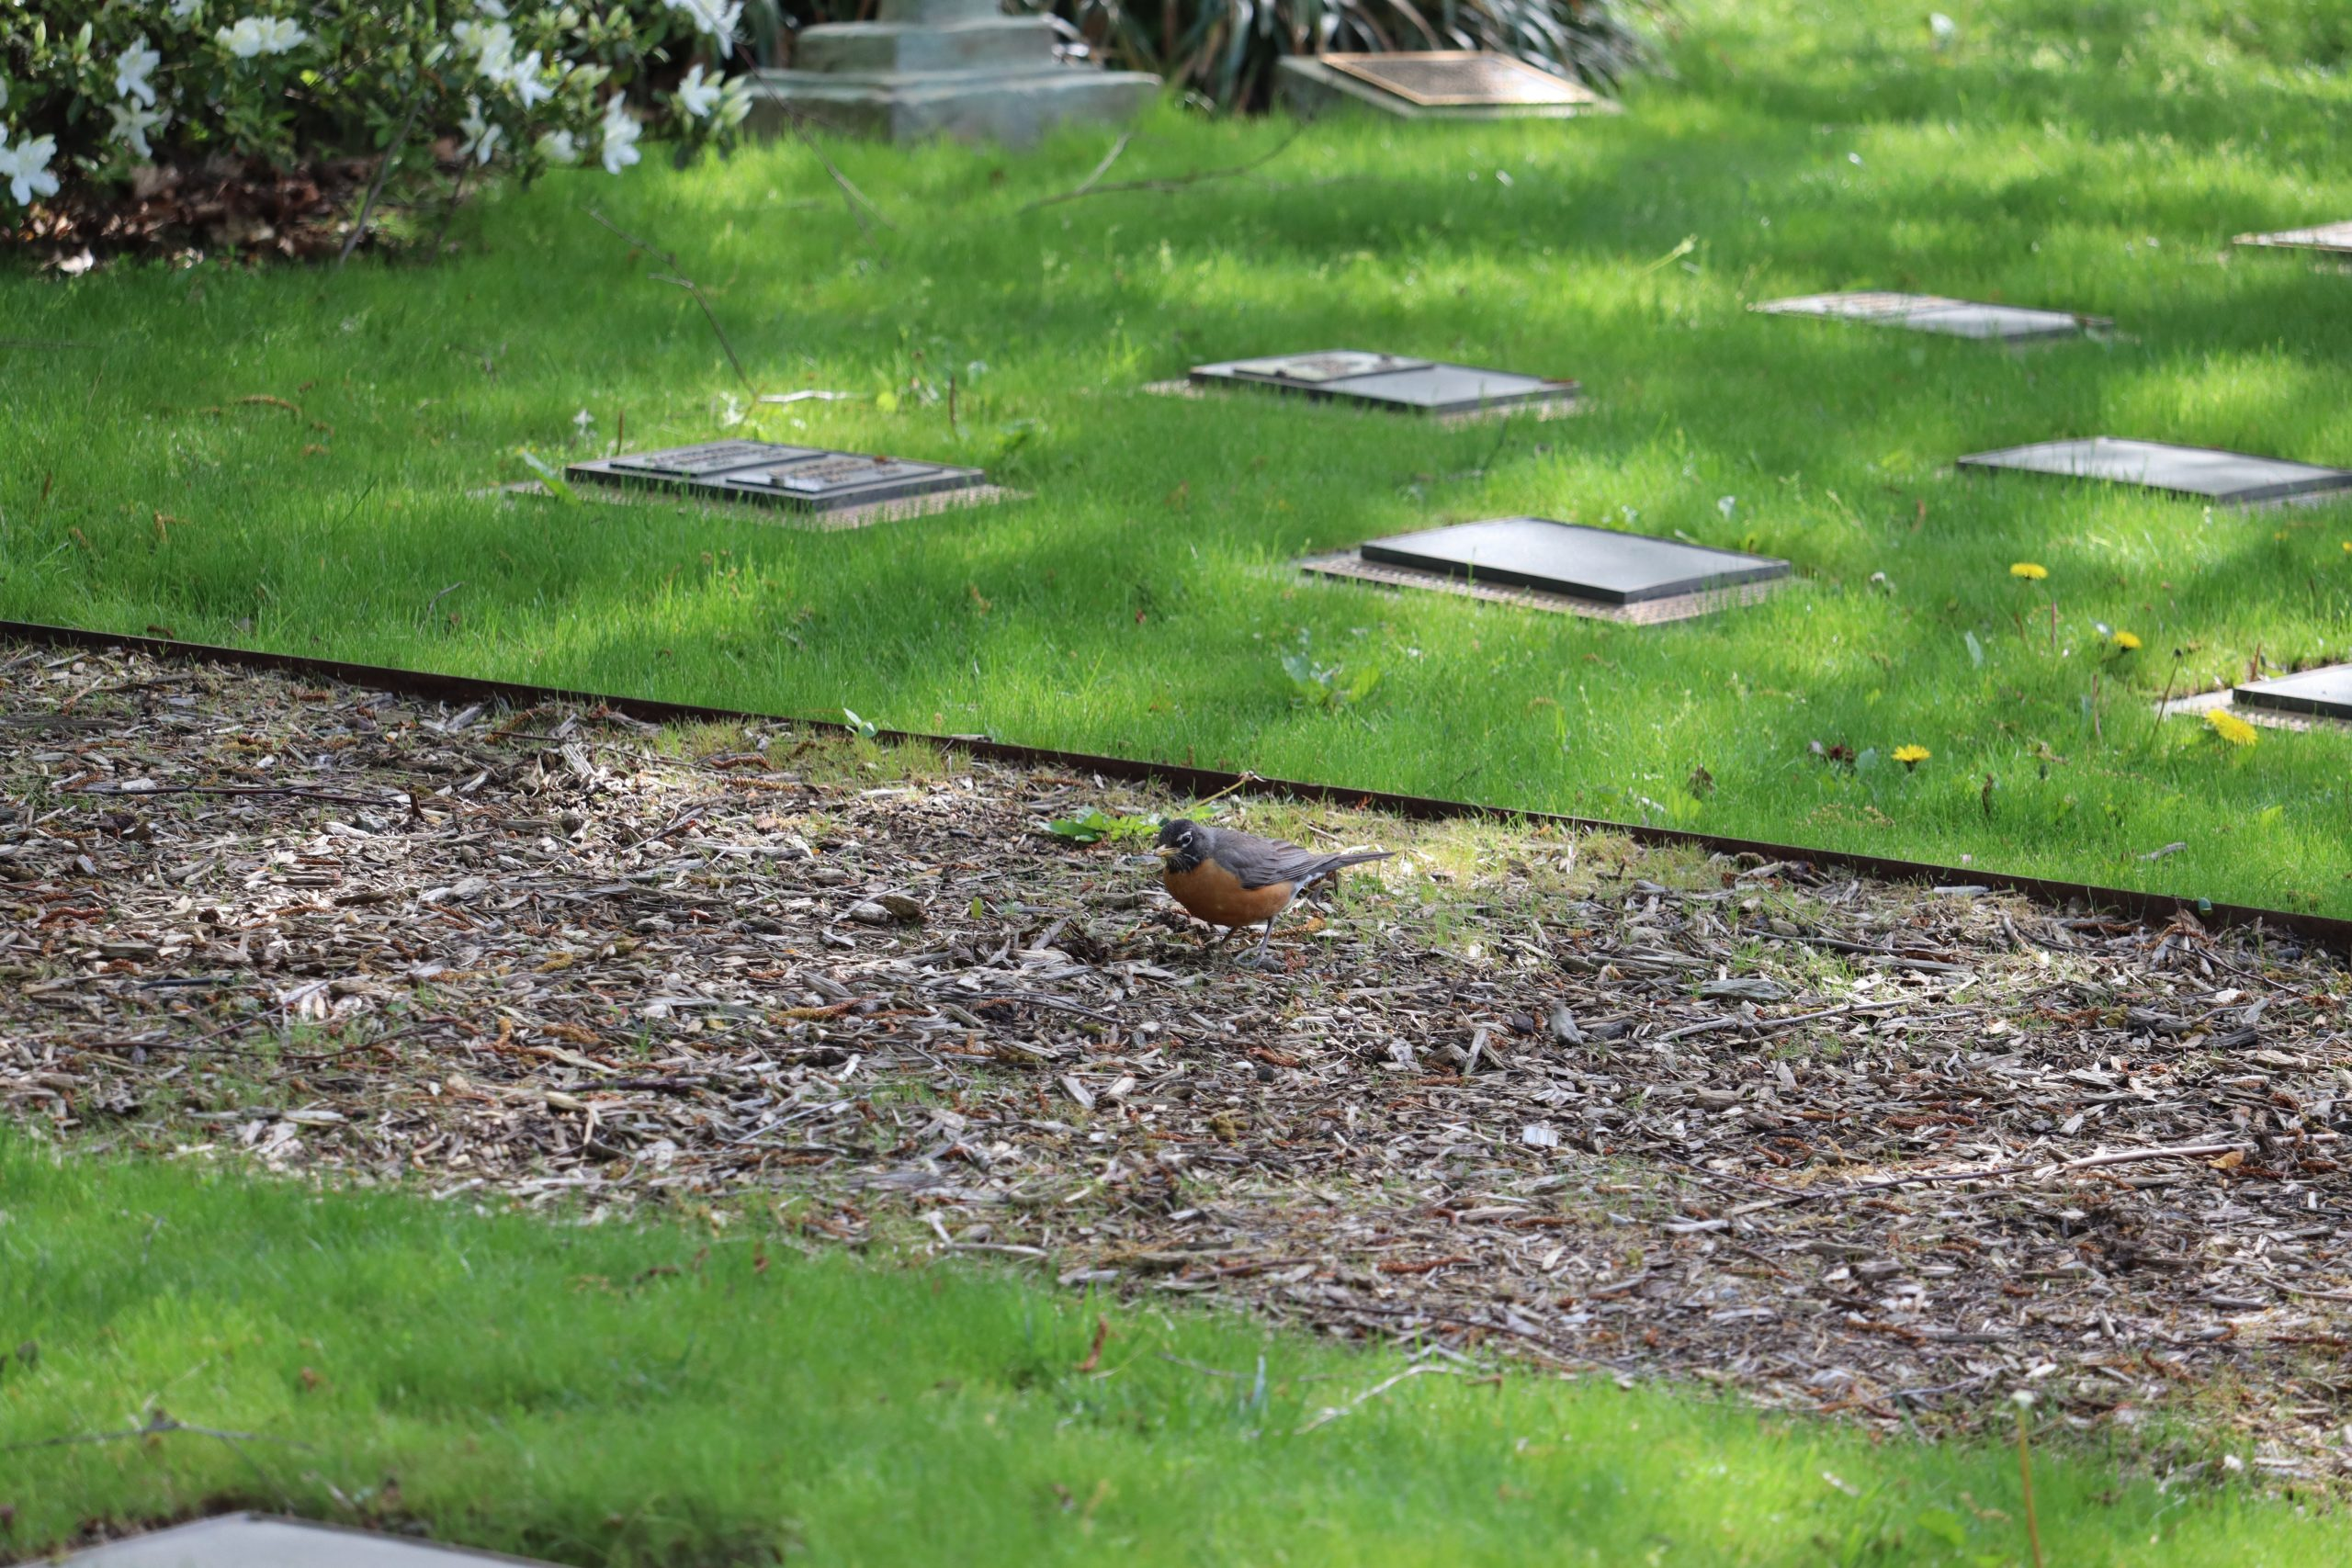 Here's an American Robin eating from the ground, just before flying away. By watching his behavior I was able to get a lot of good images. From watching other Robins, I knew he would likely fly away soon. He did. See next picture!